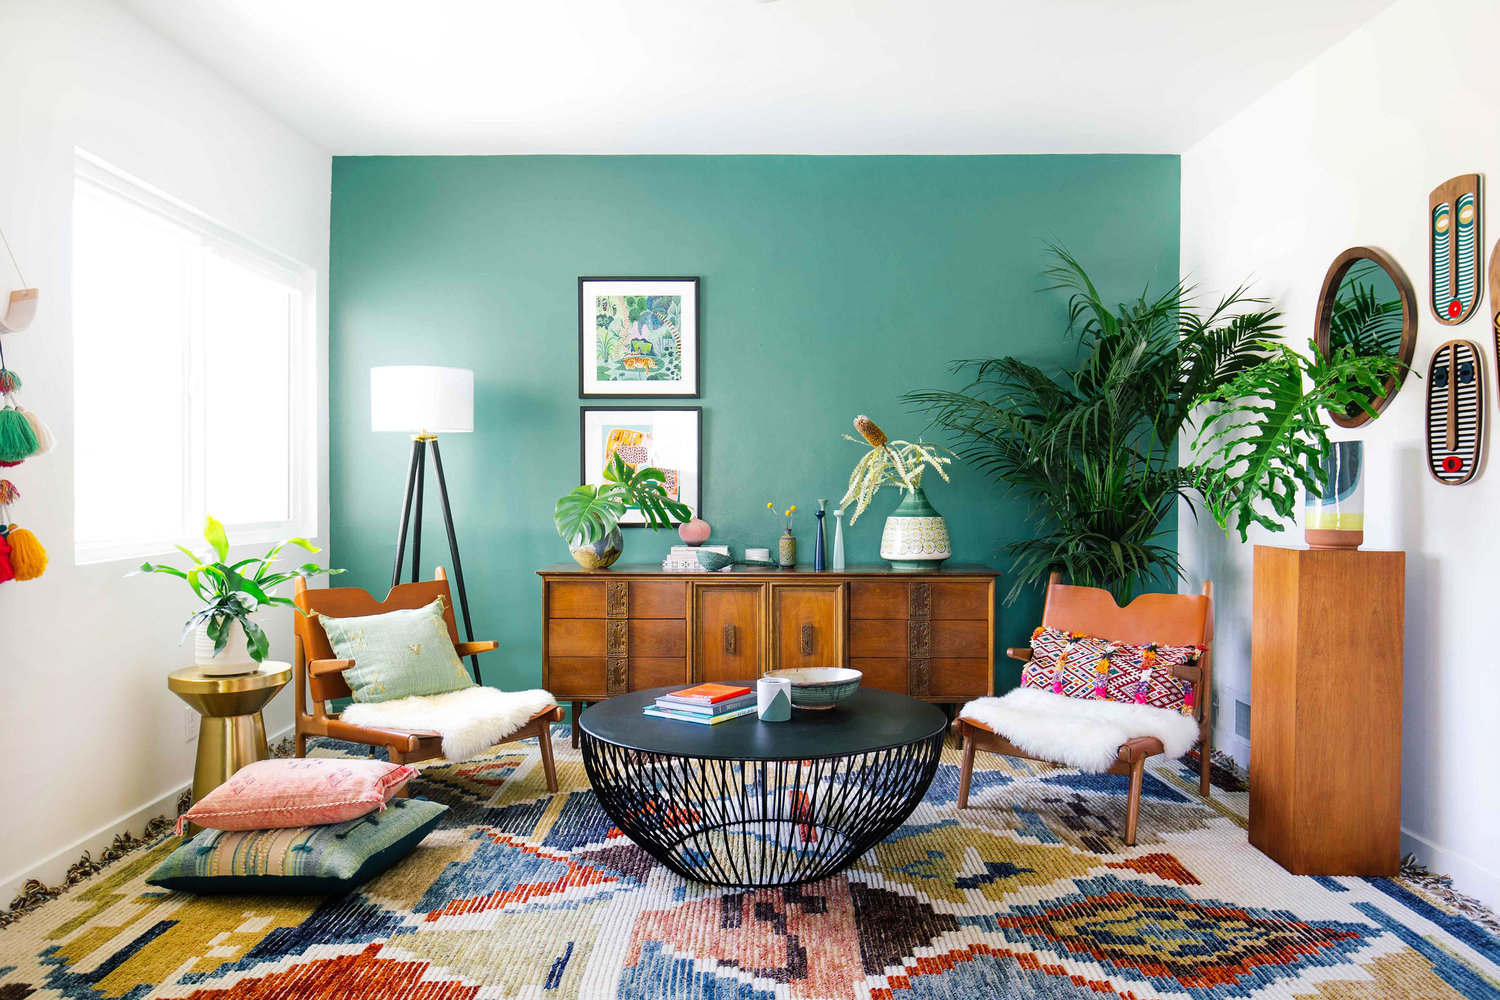 22 Easy, Unexpected Living Room Decorating Ideas  Real Simple